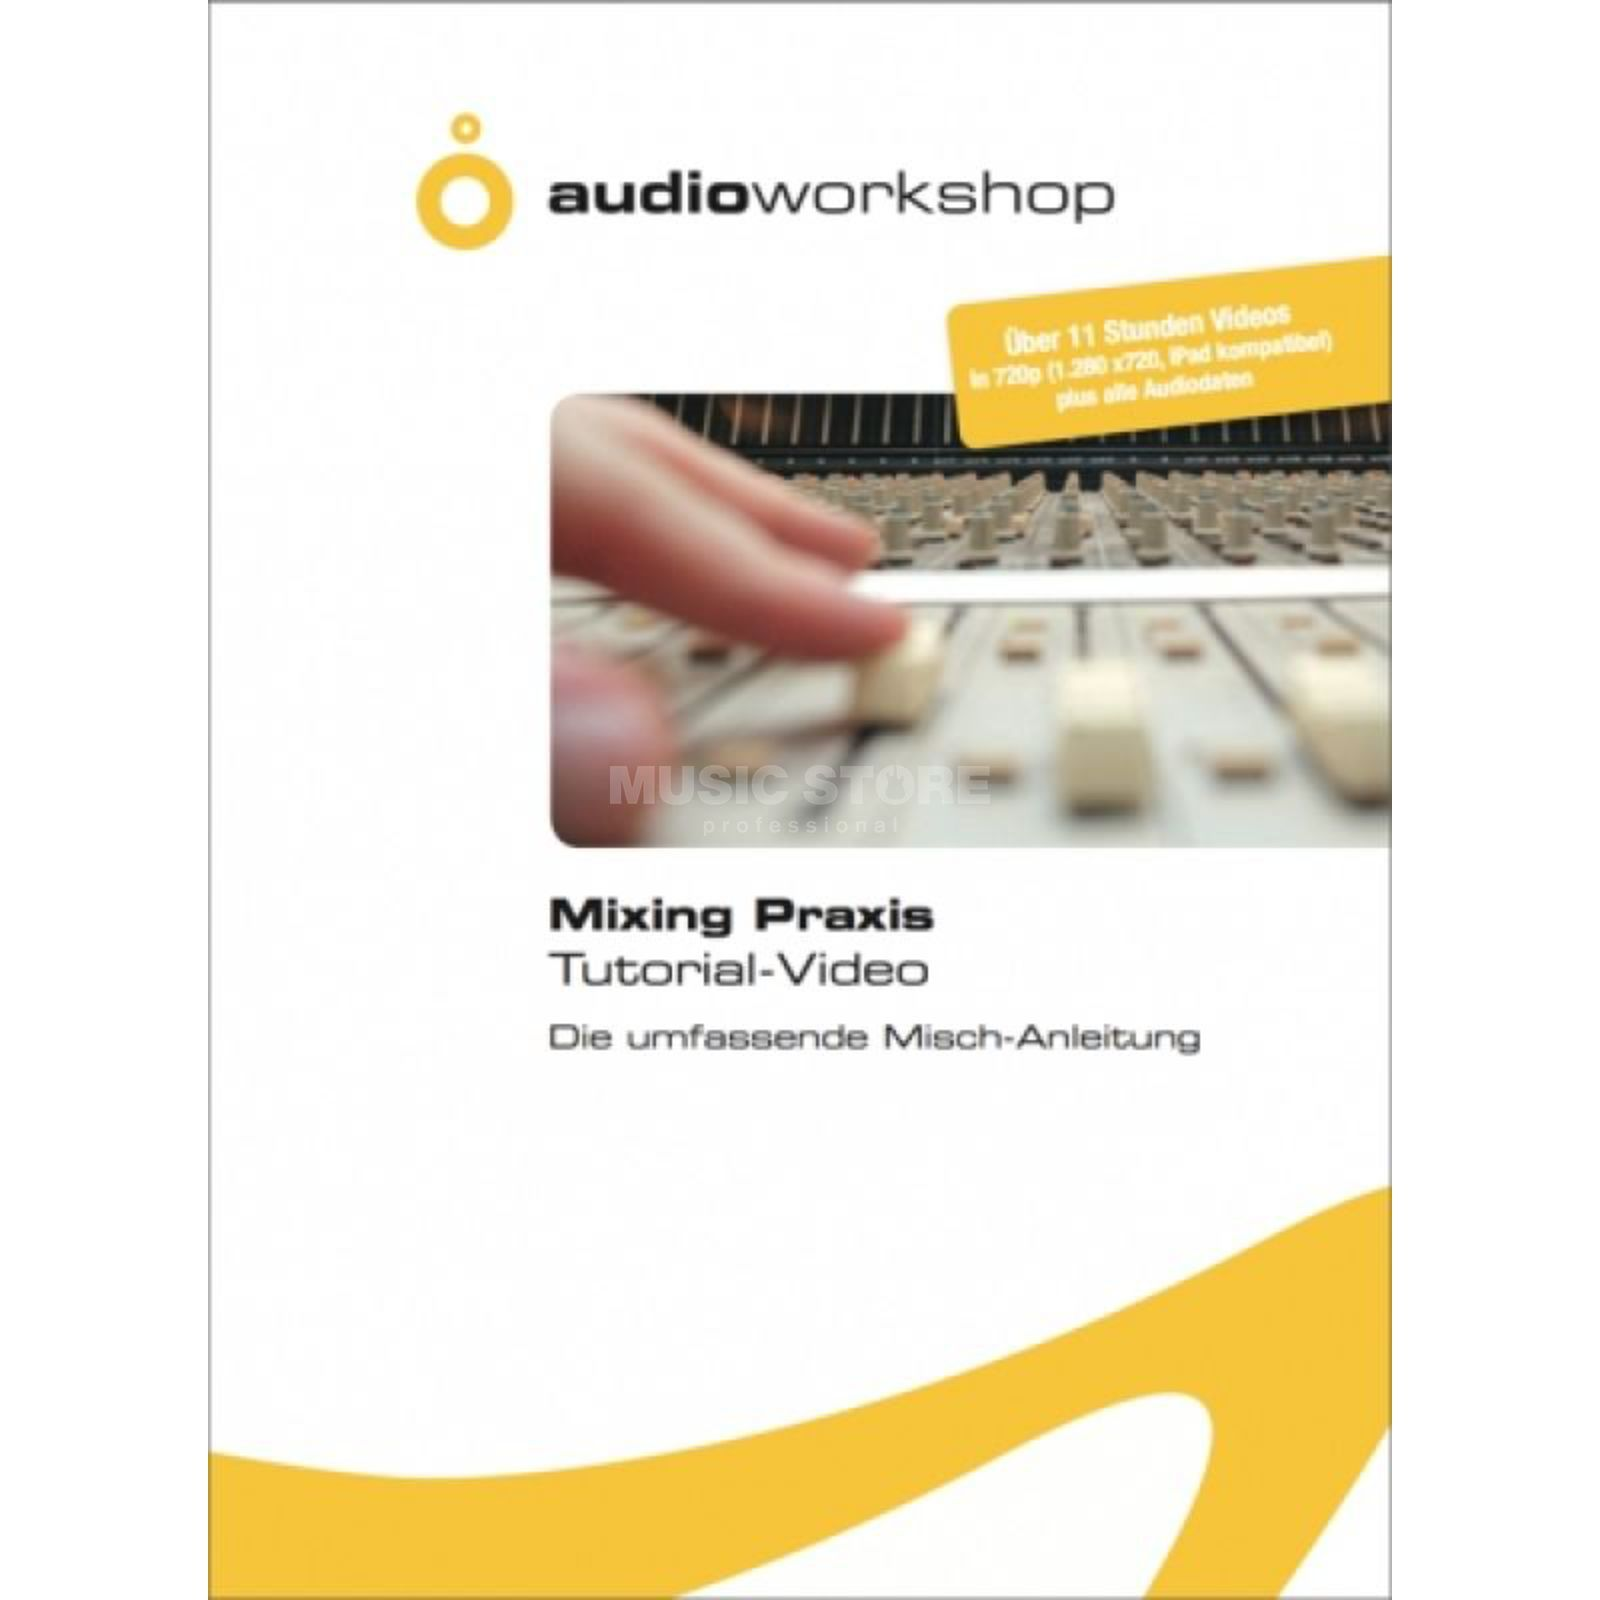 Audio Workshop Mixing Praxis Tutorial-Video Tutorial Daten DVD 11 Hours Produktbillede